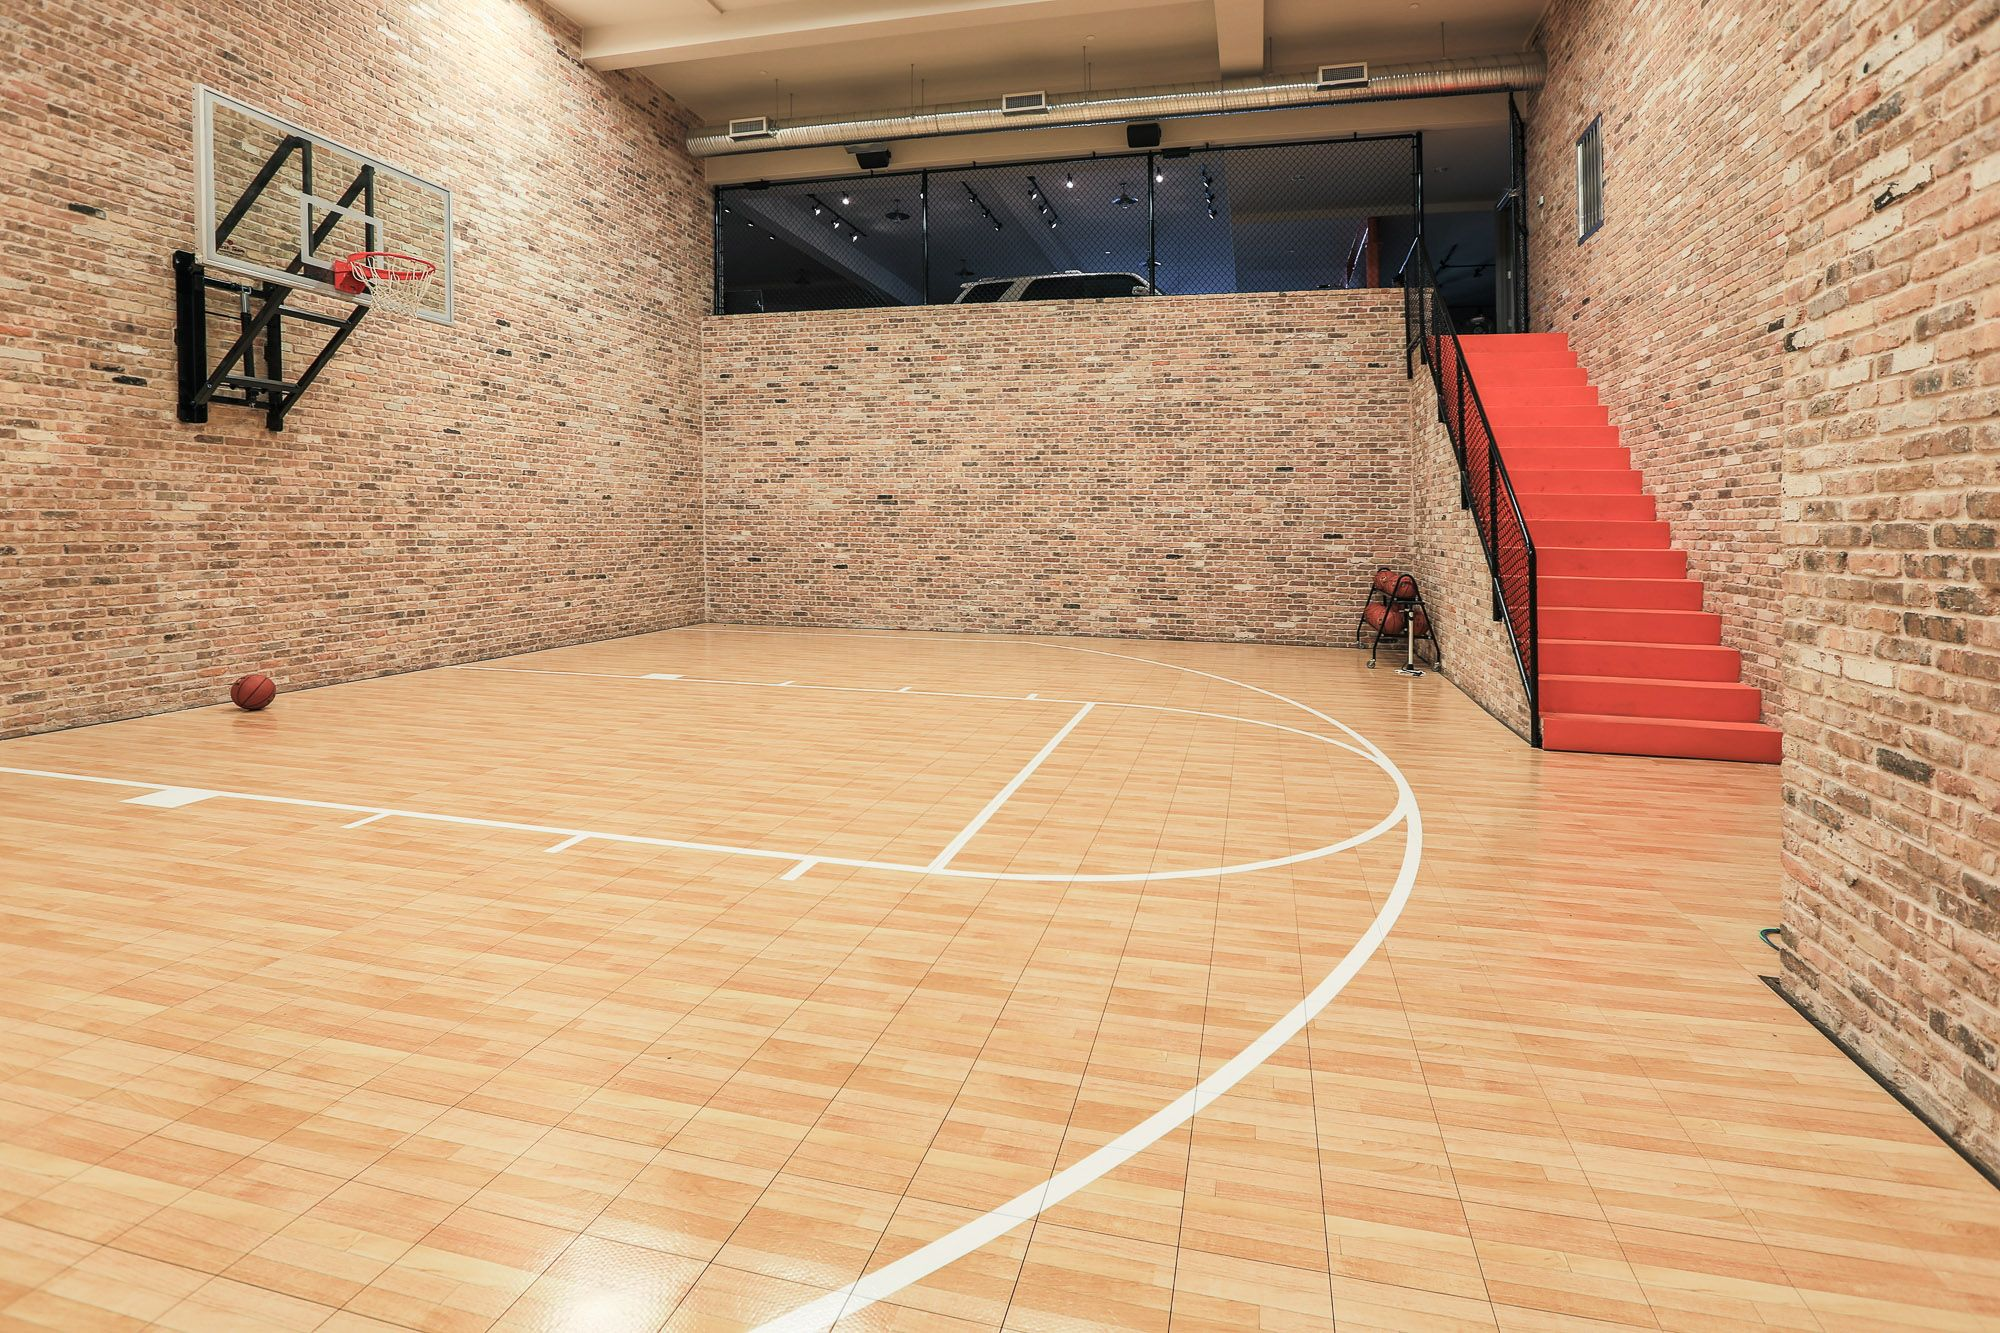 Basement Basketball Court Nice Use Of Stonework Steps Down To Court And Area At The Top For